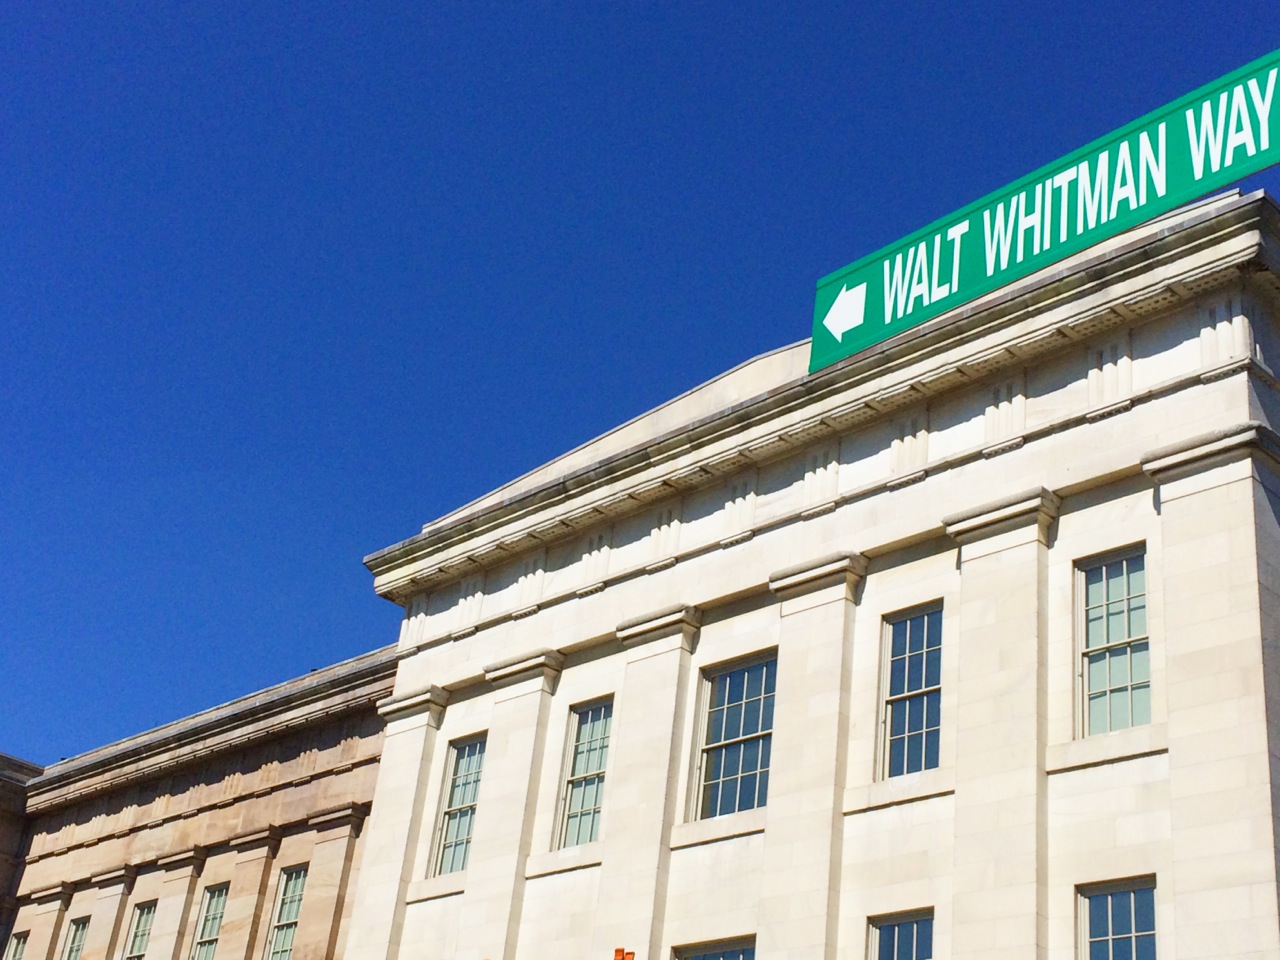 Walt Whitman Way